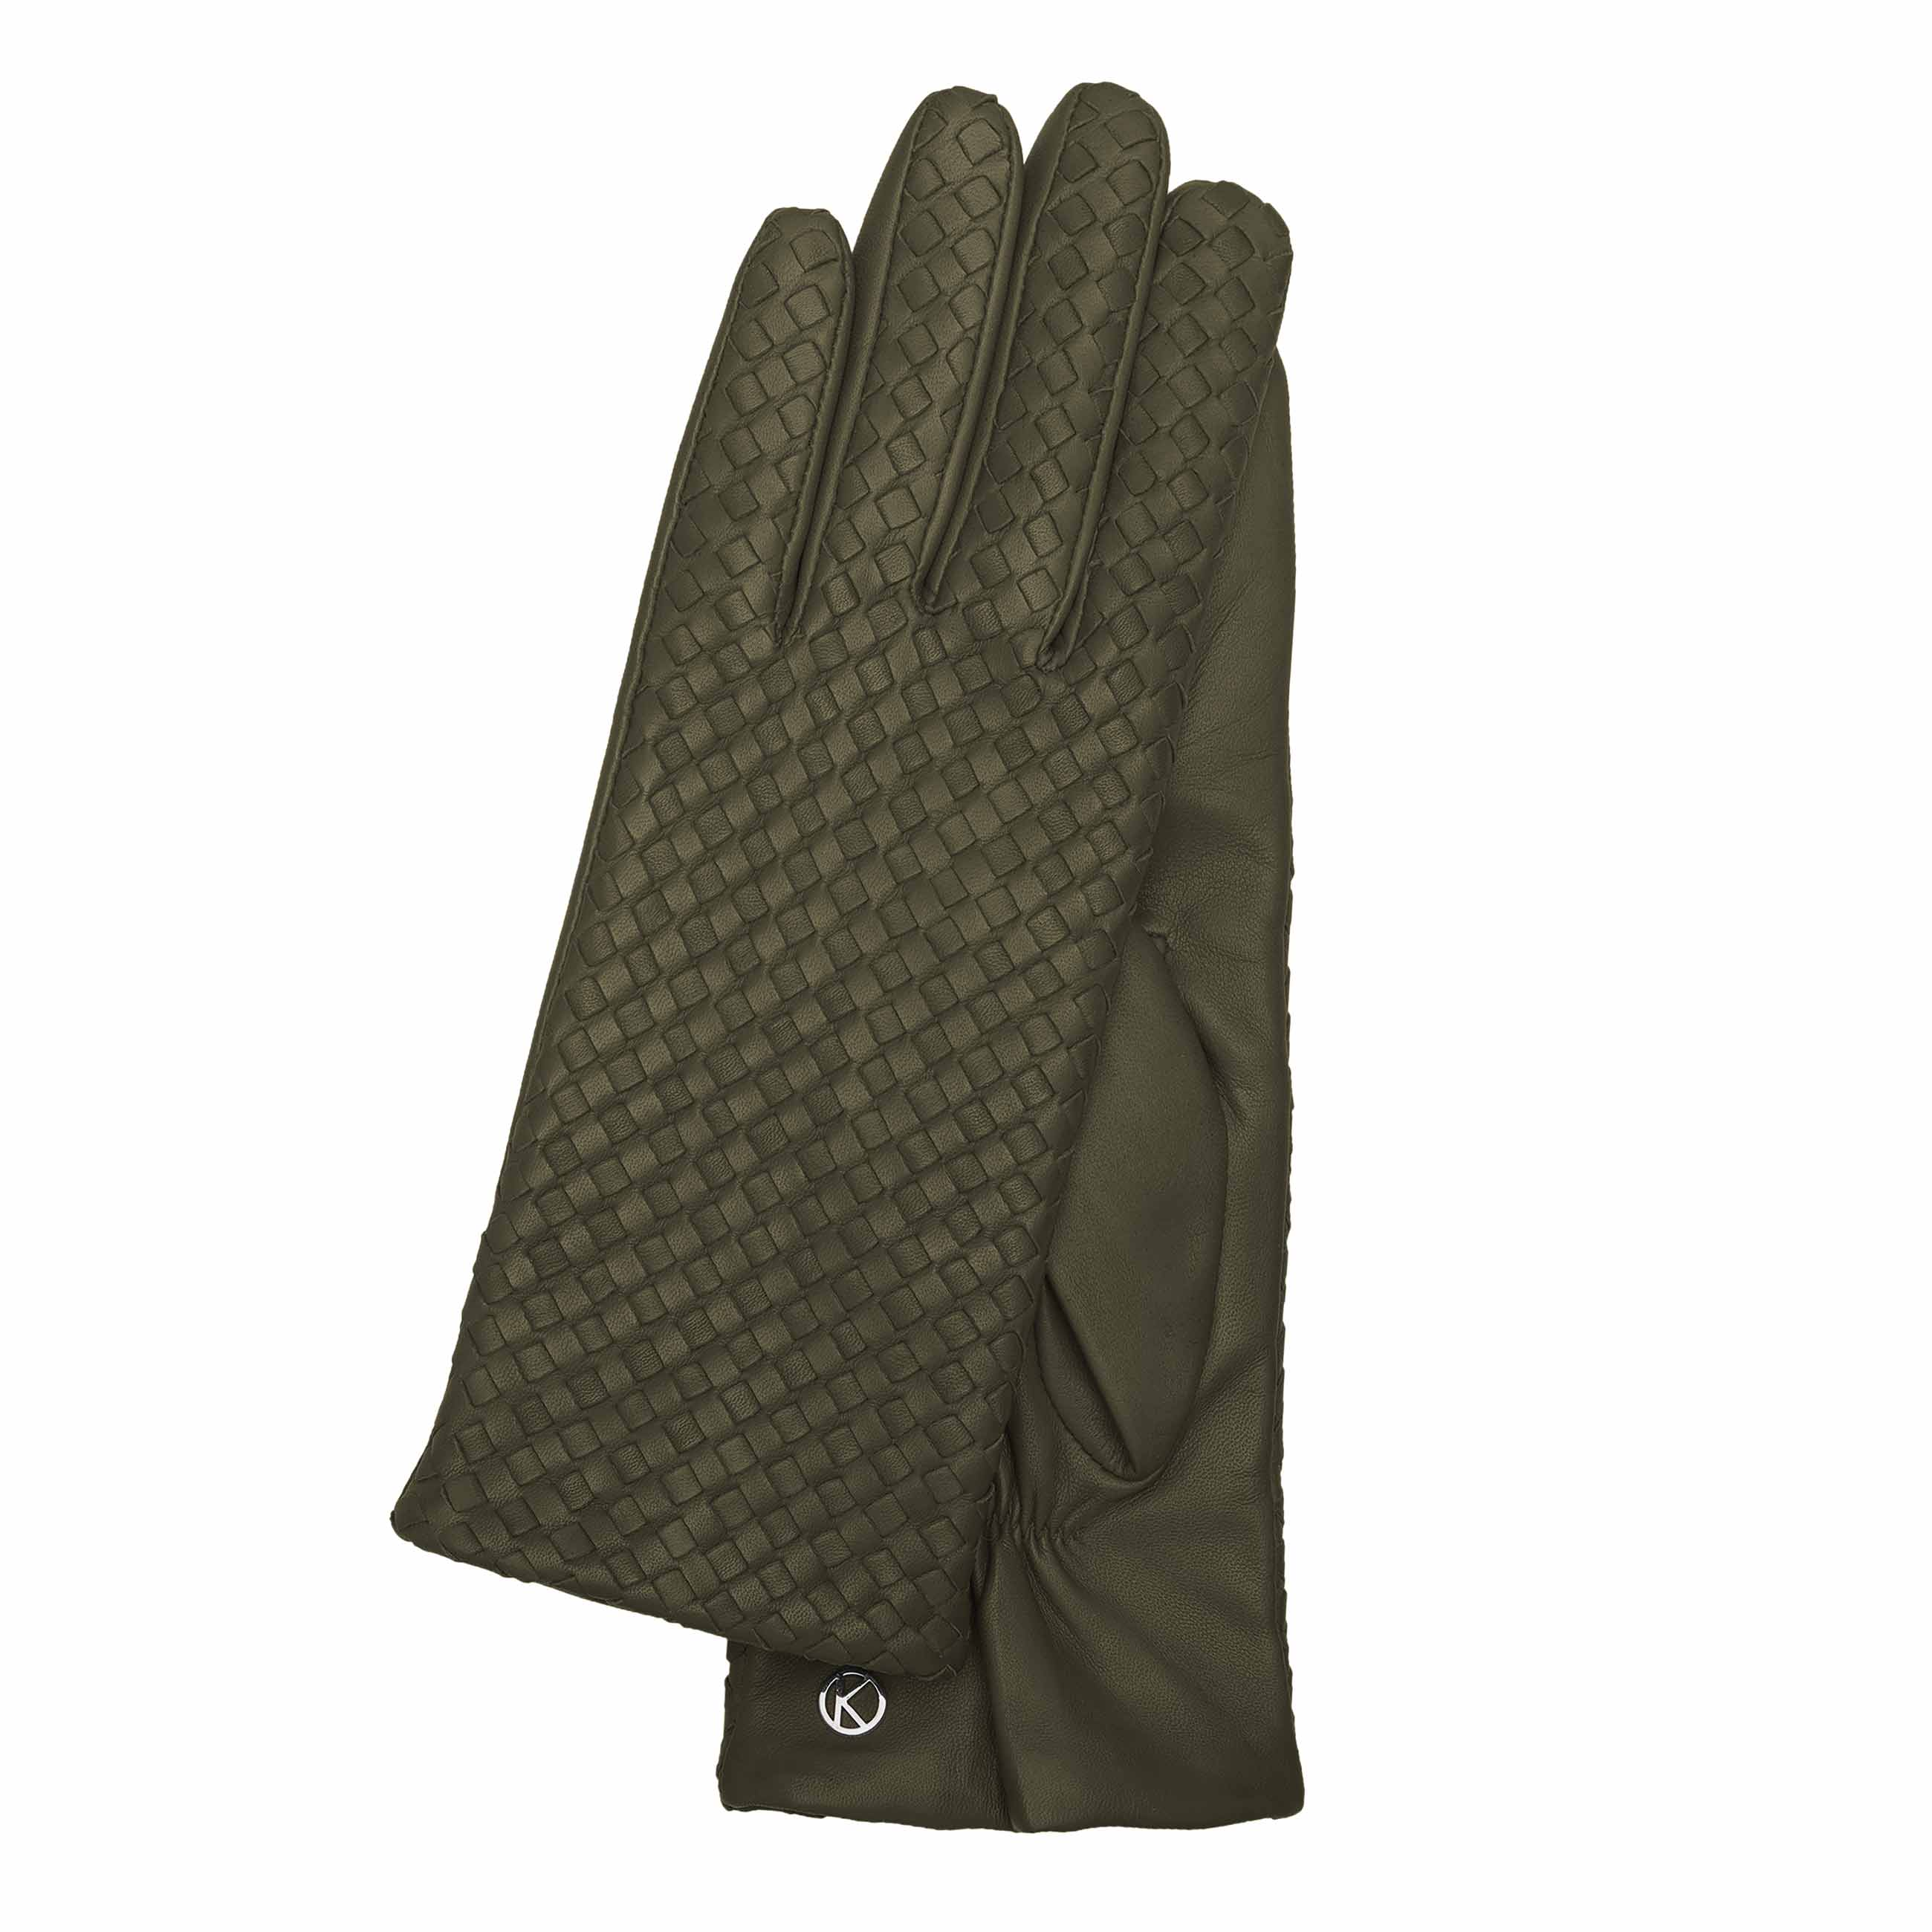 Mila Touch545 olive